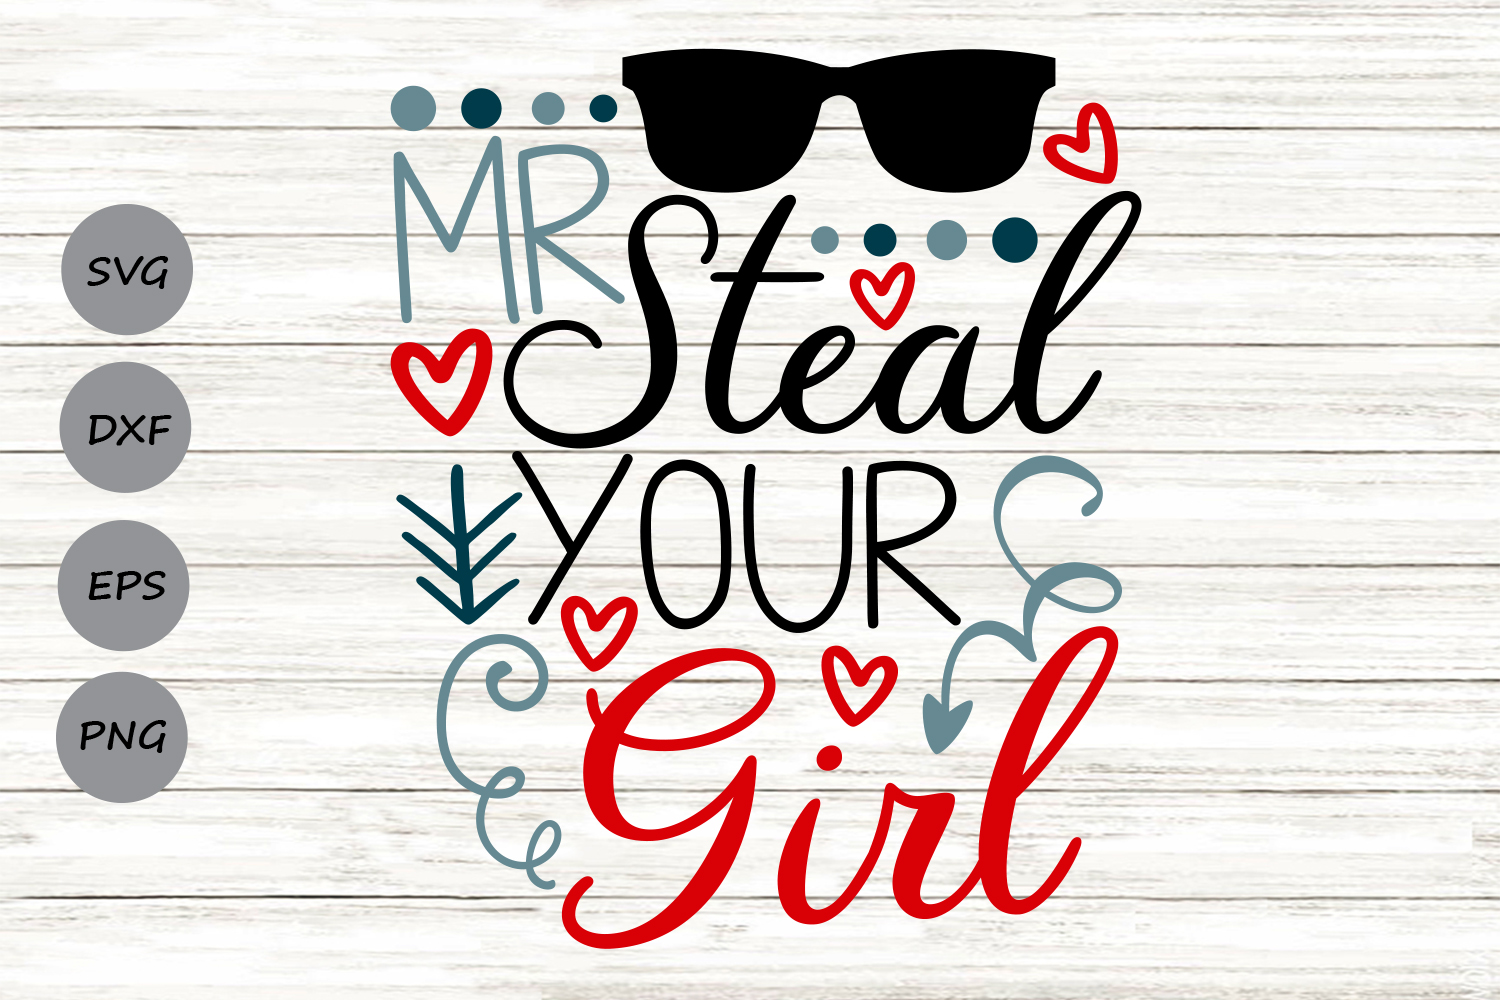 Download Free Mr Steal Your Girl Graphic By Cosmosfineart Creative Fabrica for Cricut Explore, Silhouette and other cutting machines.